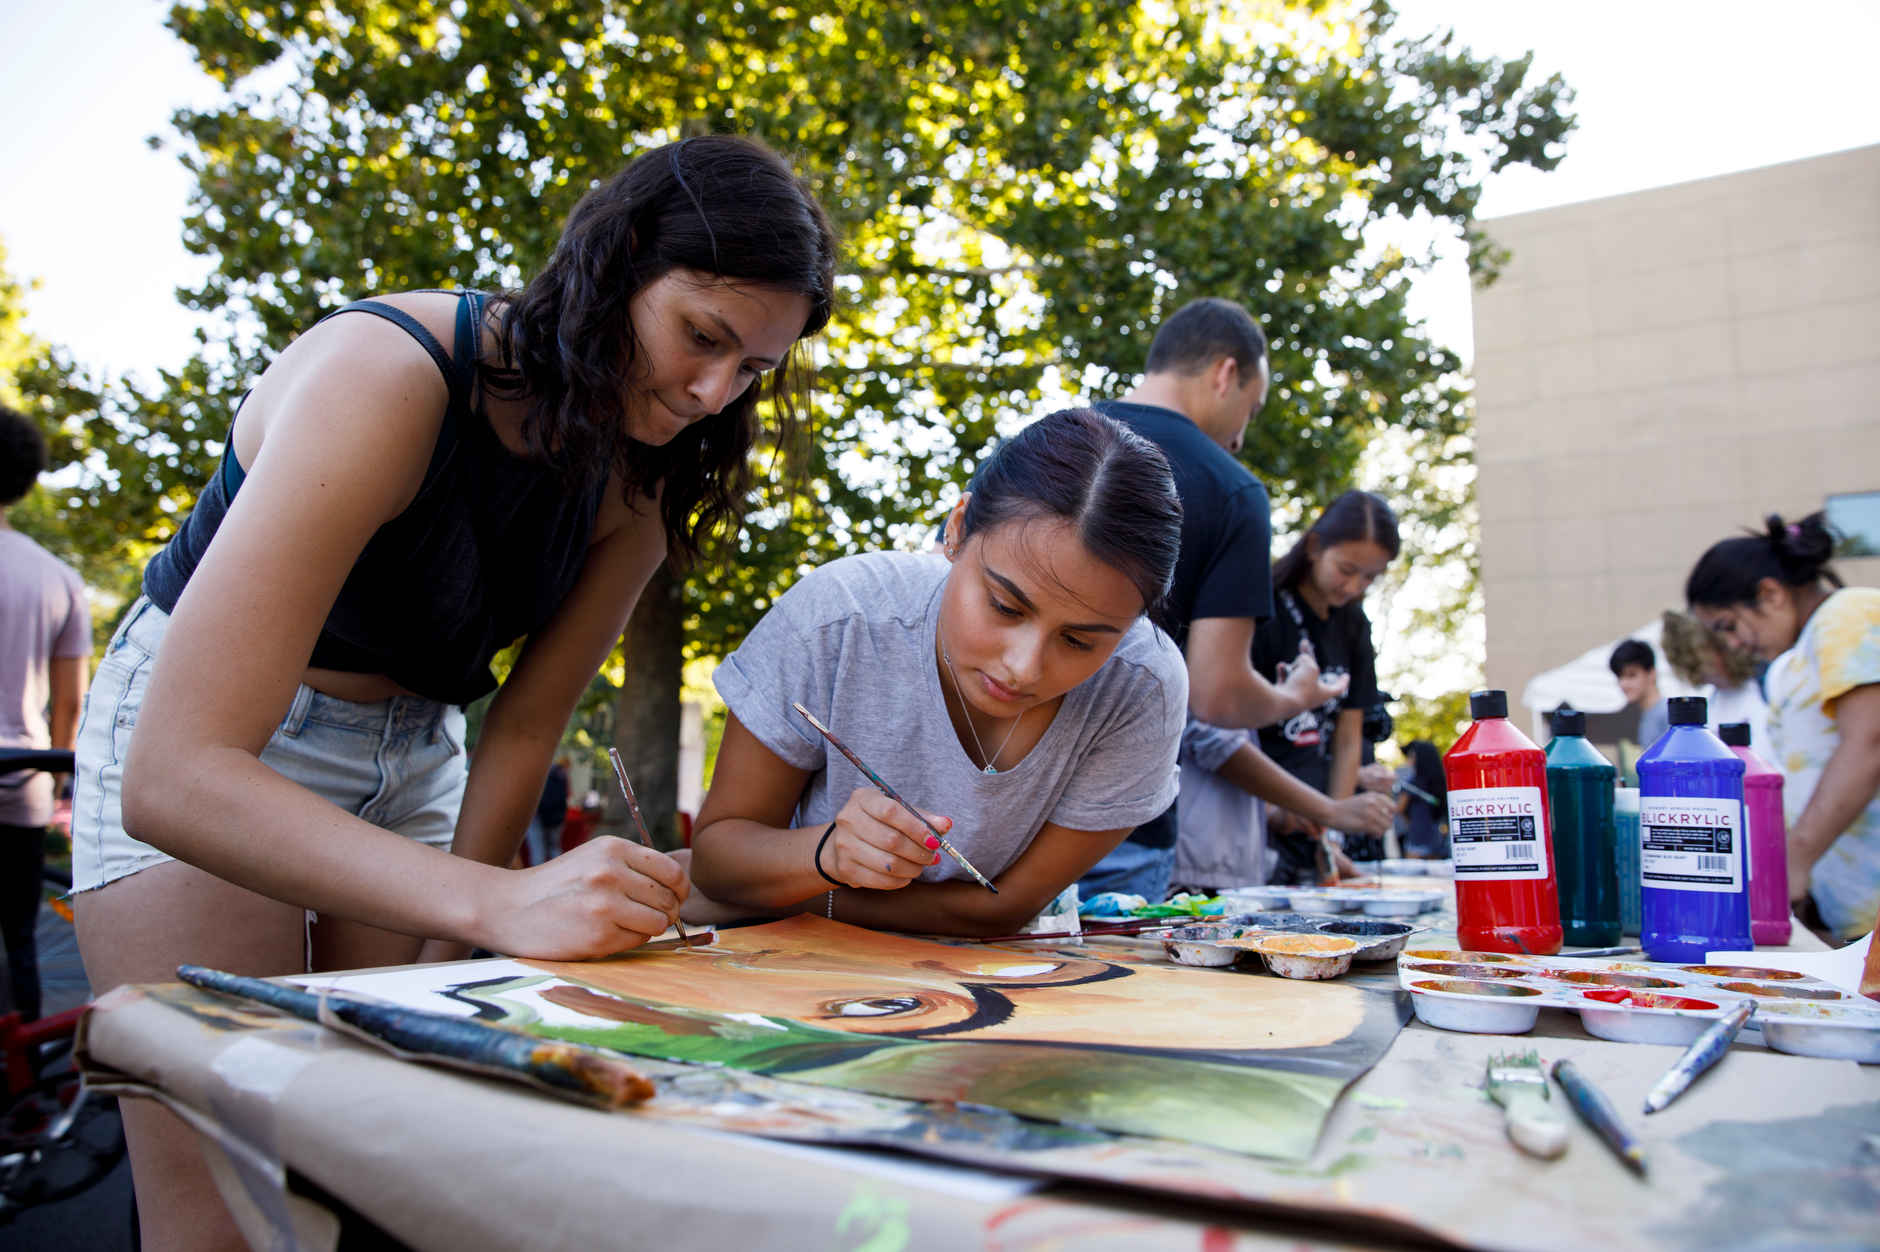 Indiana University senior Rhianna Ladd, left, and junior Brianny Alvarado paint during the First Thursdays Festival on the Arts Plaza at IU Bloomington on Thursday, Sept. 5, 2019. (James Brosher/Indiana University)